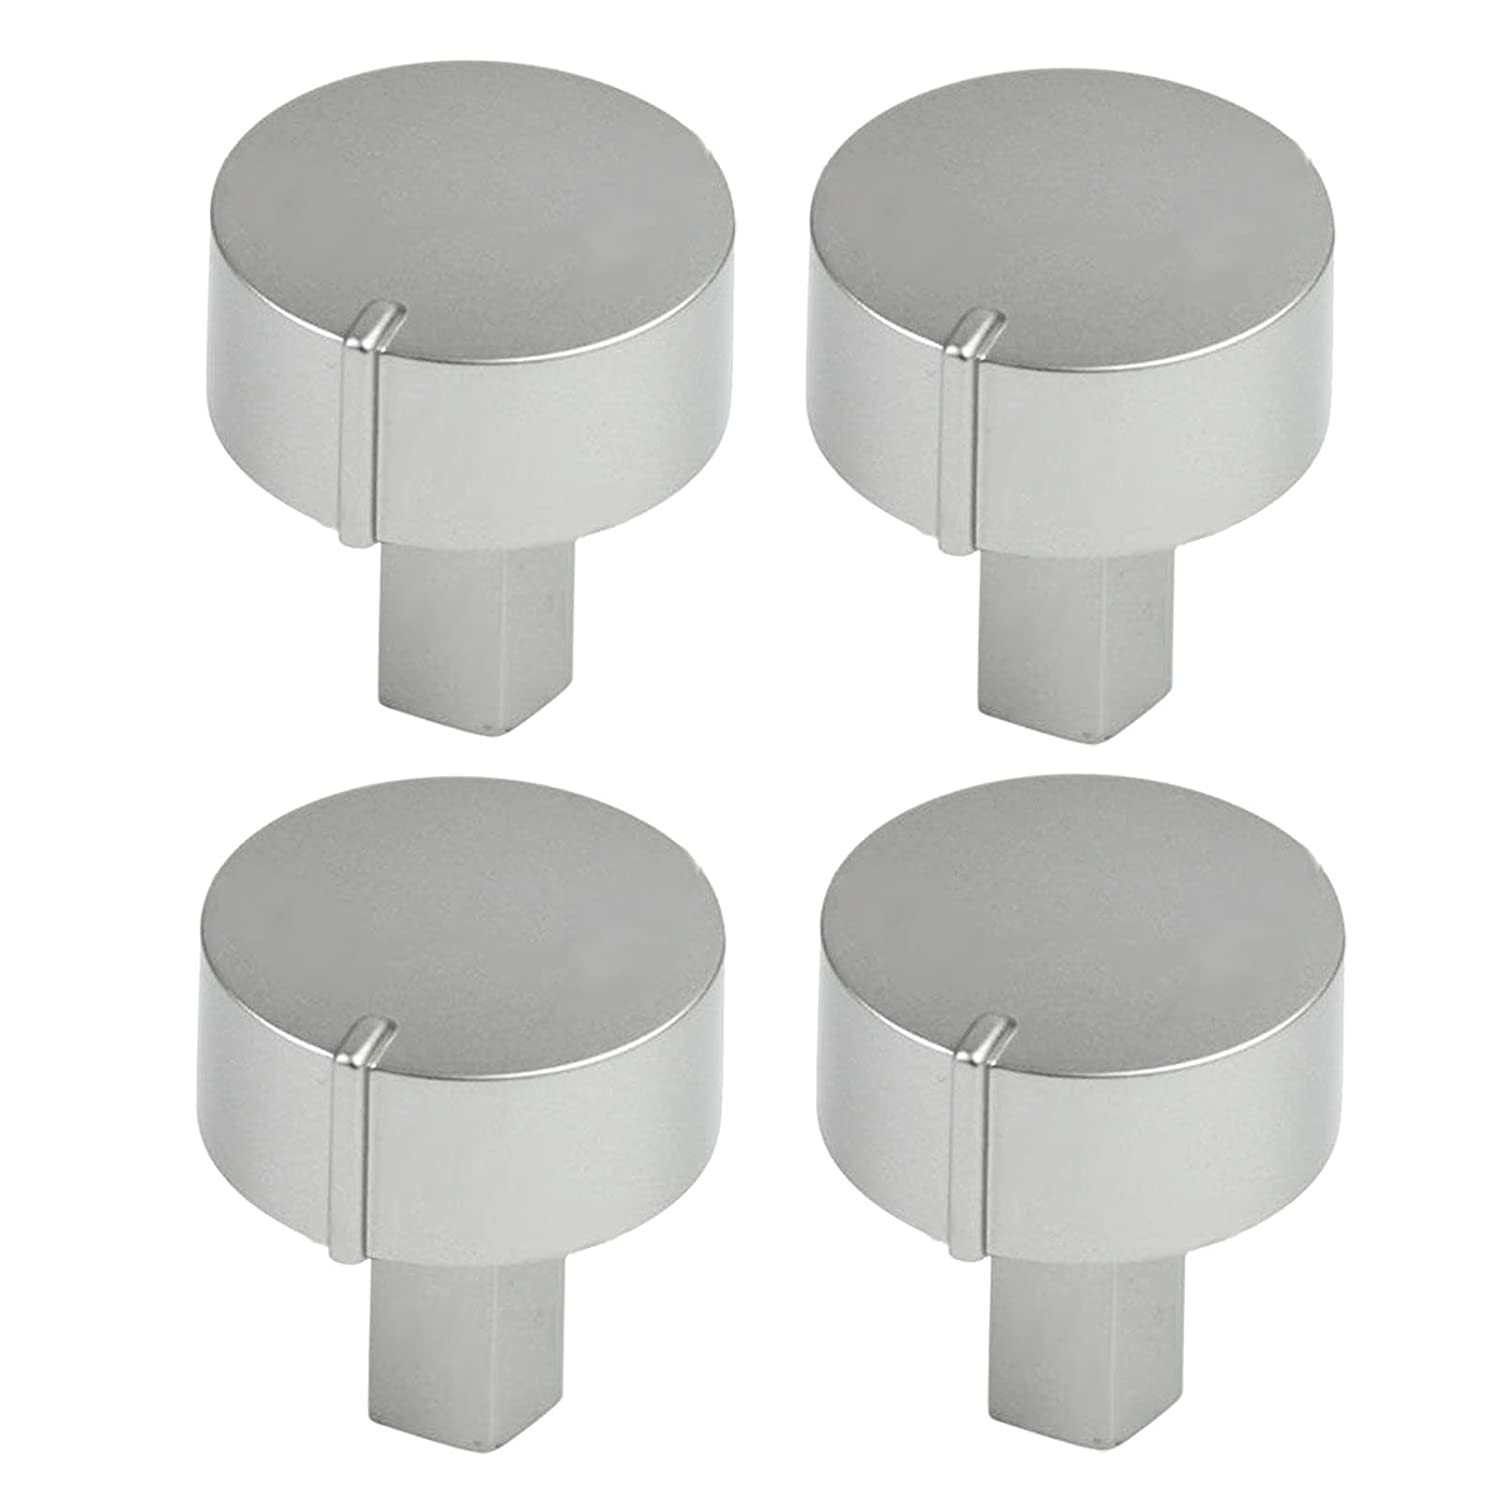 Silver, Pack of 3 Diplomat ADP Series Oven Cooker Hob Control Switch Knobs